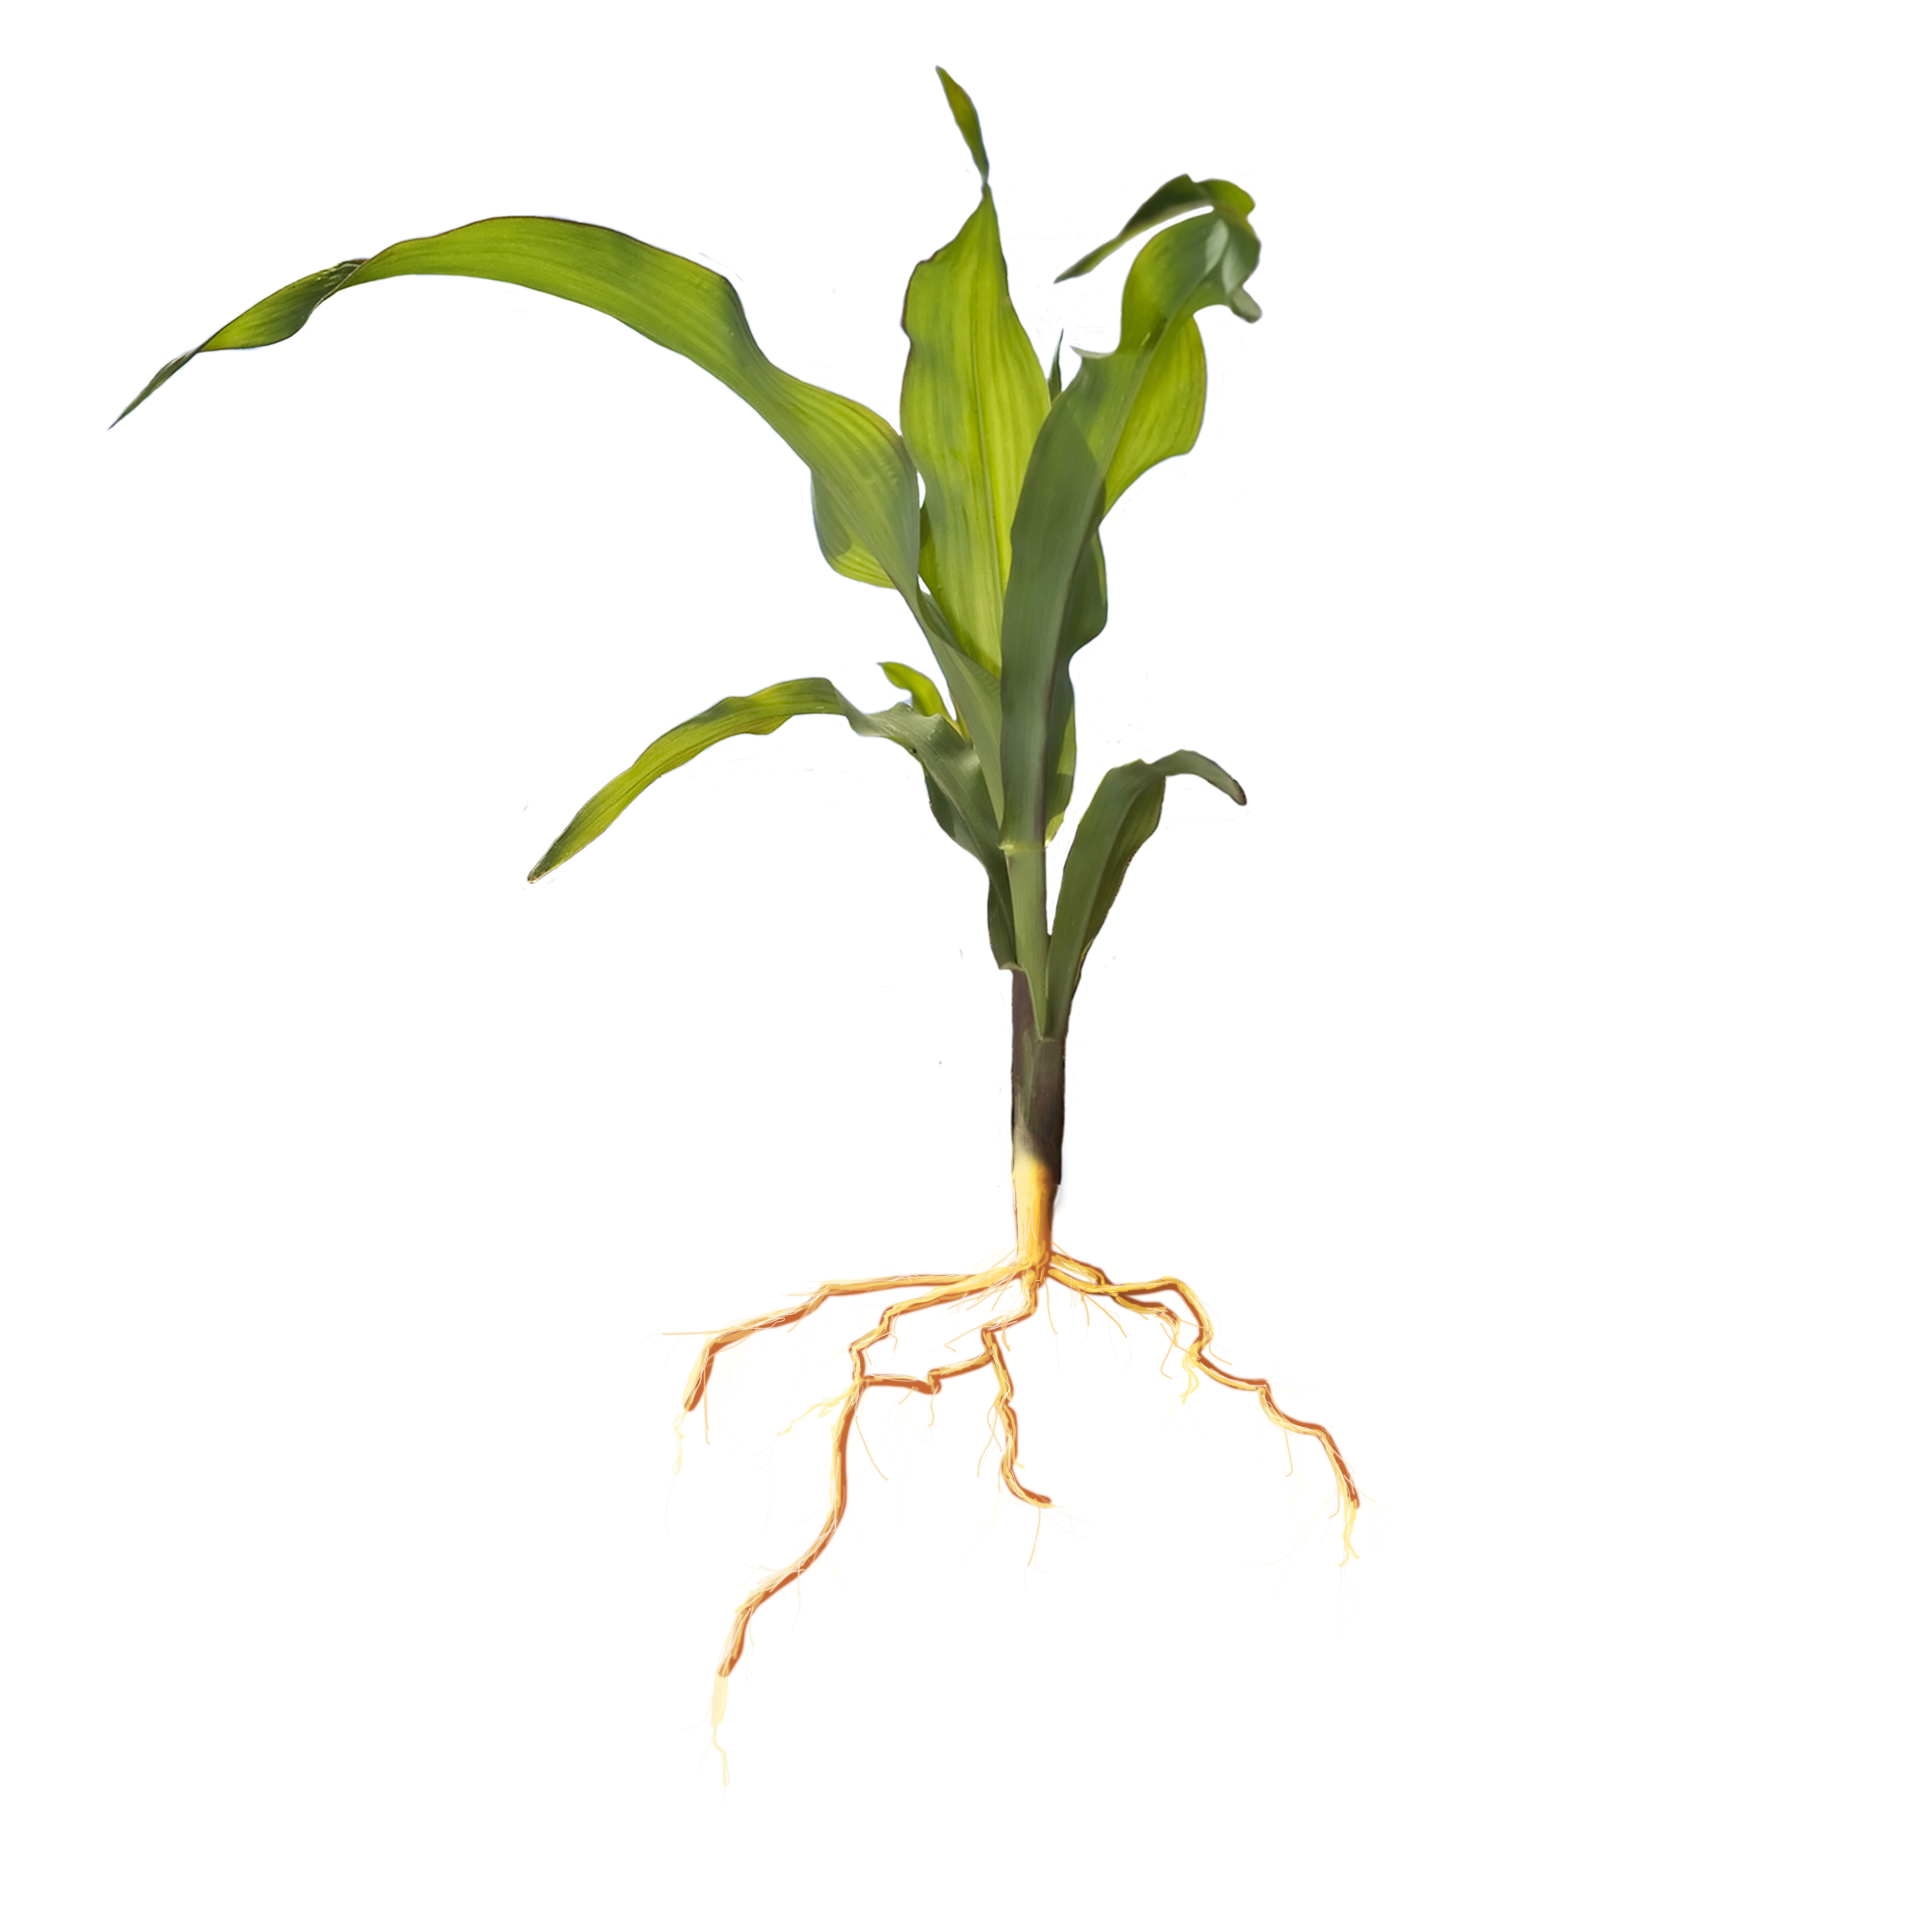 picture of corn plant